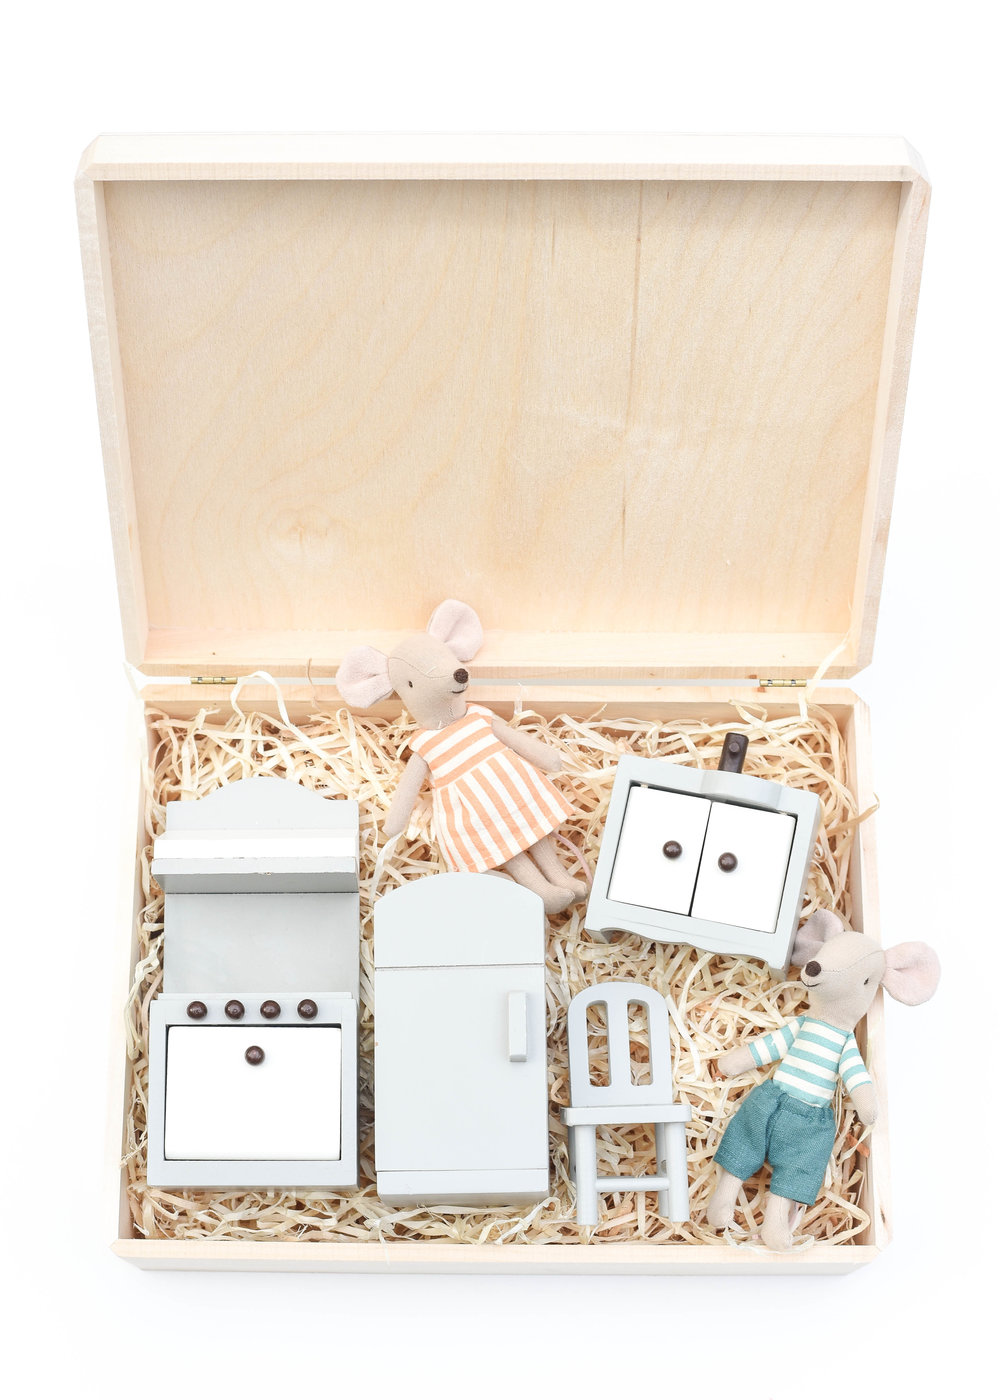 Kitchen Mice Gift Set - This curated set includes some of our favorite heirloom mice, along with a favorite maker of dollhouse furniture. Paired together, this set is great for the dollhouse or carried around in this wooden gift box for play on the go!L:R | Dollhouse Kitchen Set | Big Sister Mouse | Big Brother MouseOur go to gift wrap this holiday, shown here:Unfinished Walnut Box (2 pack) | Aspen Wood Excelsior (BULK)Only needing to wrap one present?Individual Unfinished Walnut Box | Aspen Wood Excelsior (4 oz bag)